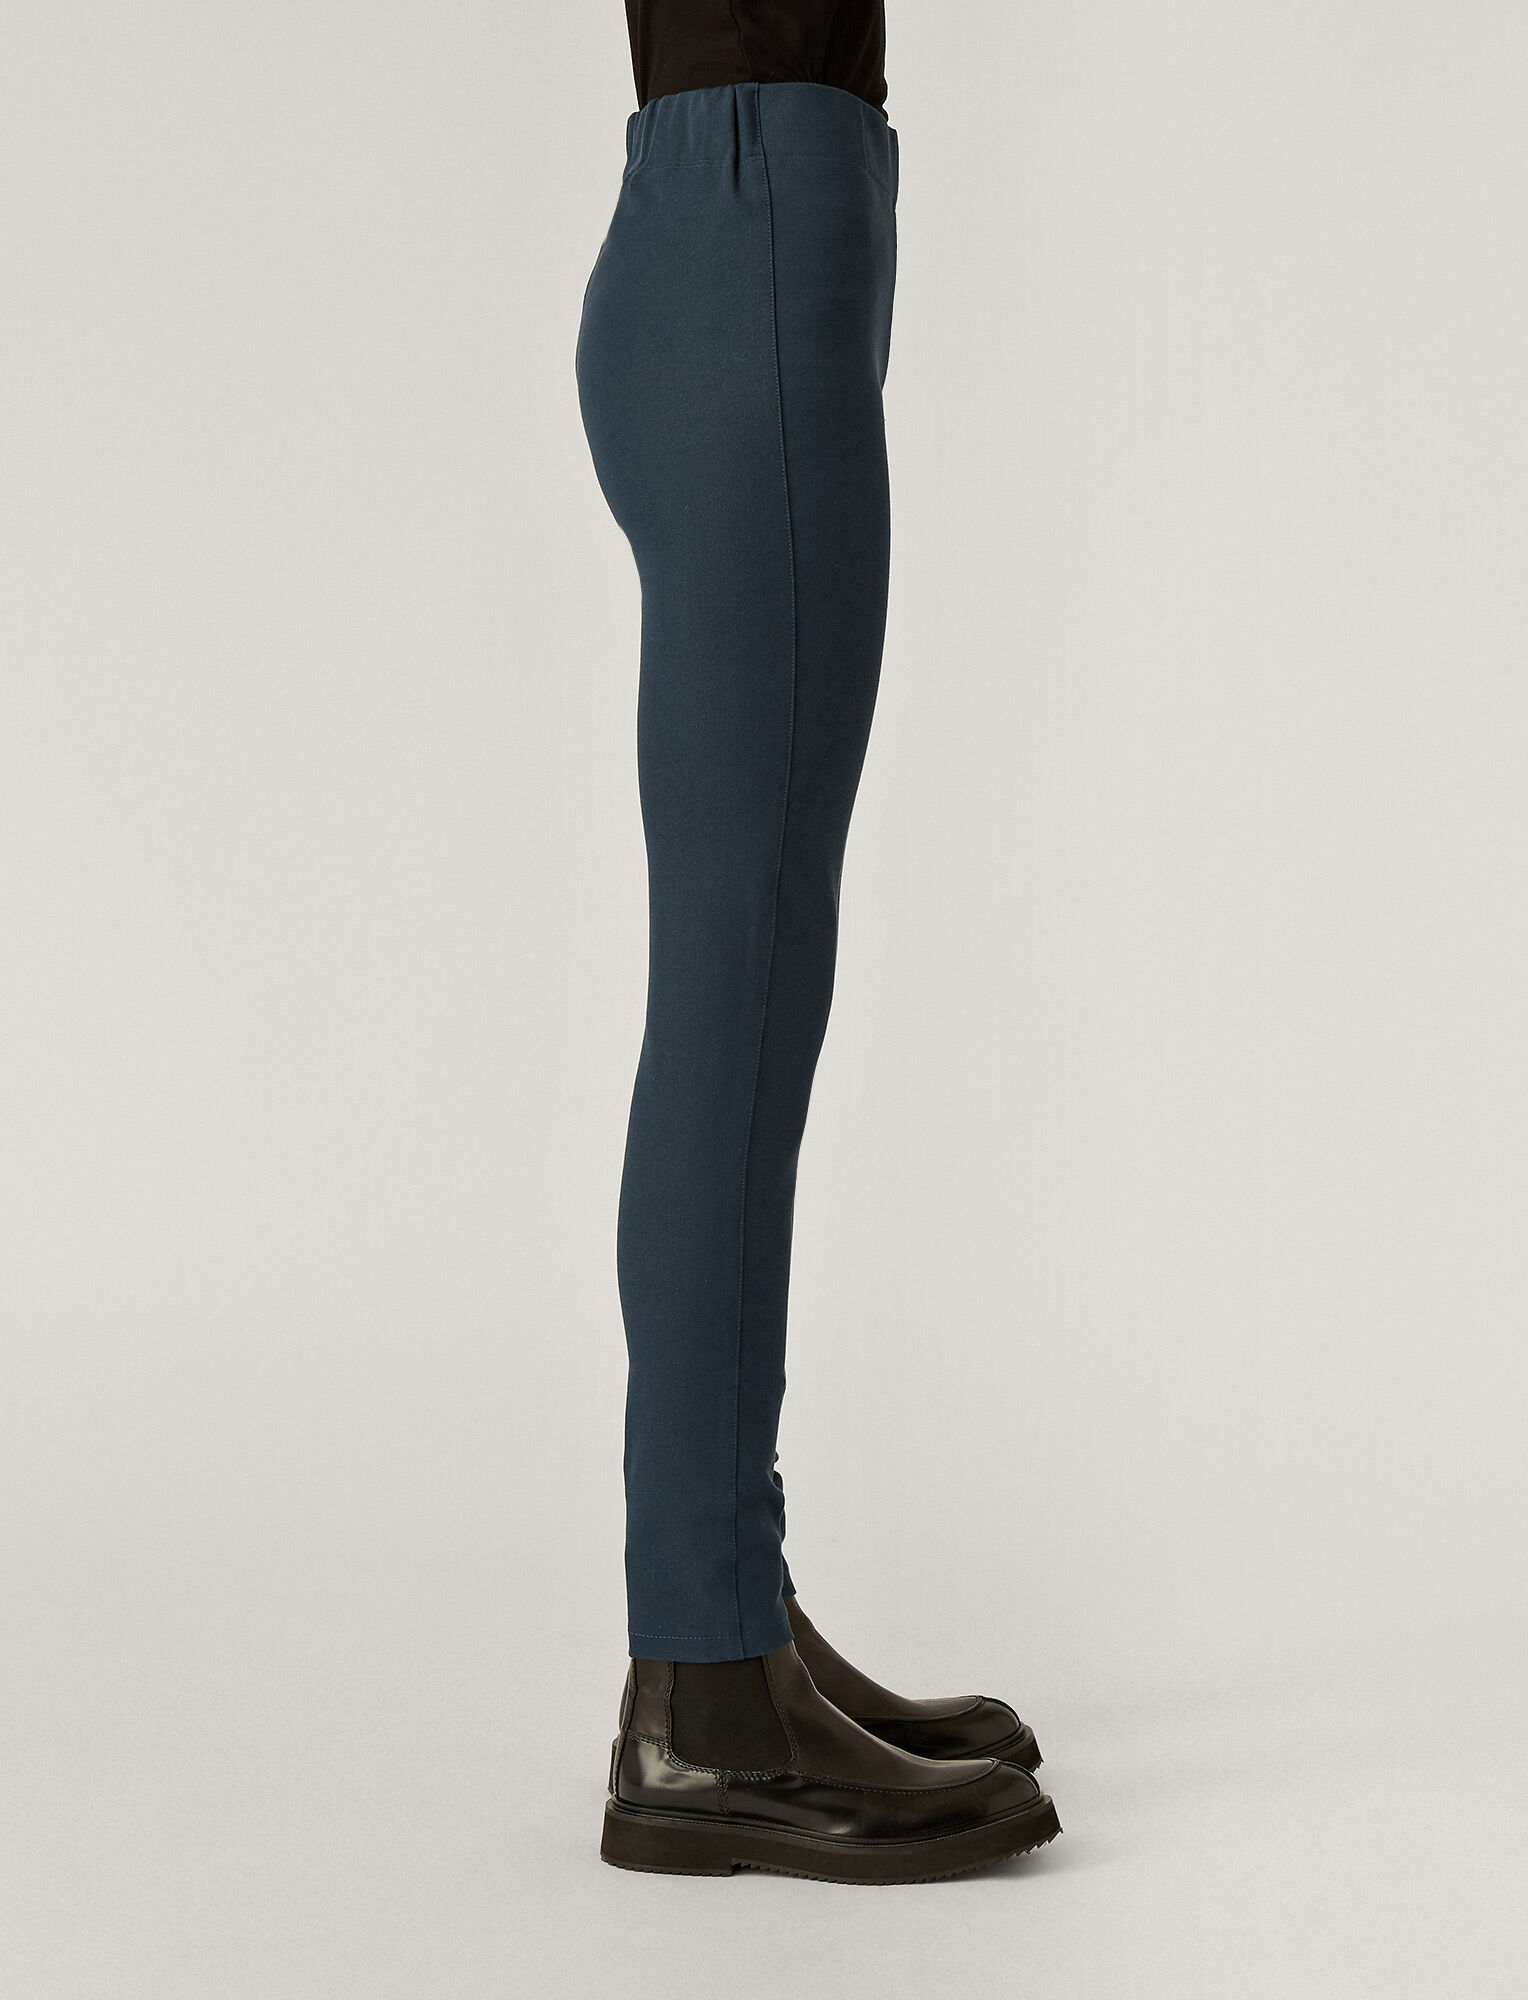 Joseph, Gabardine Stretch Legging, in Petrol